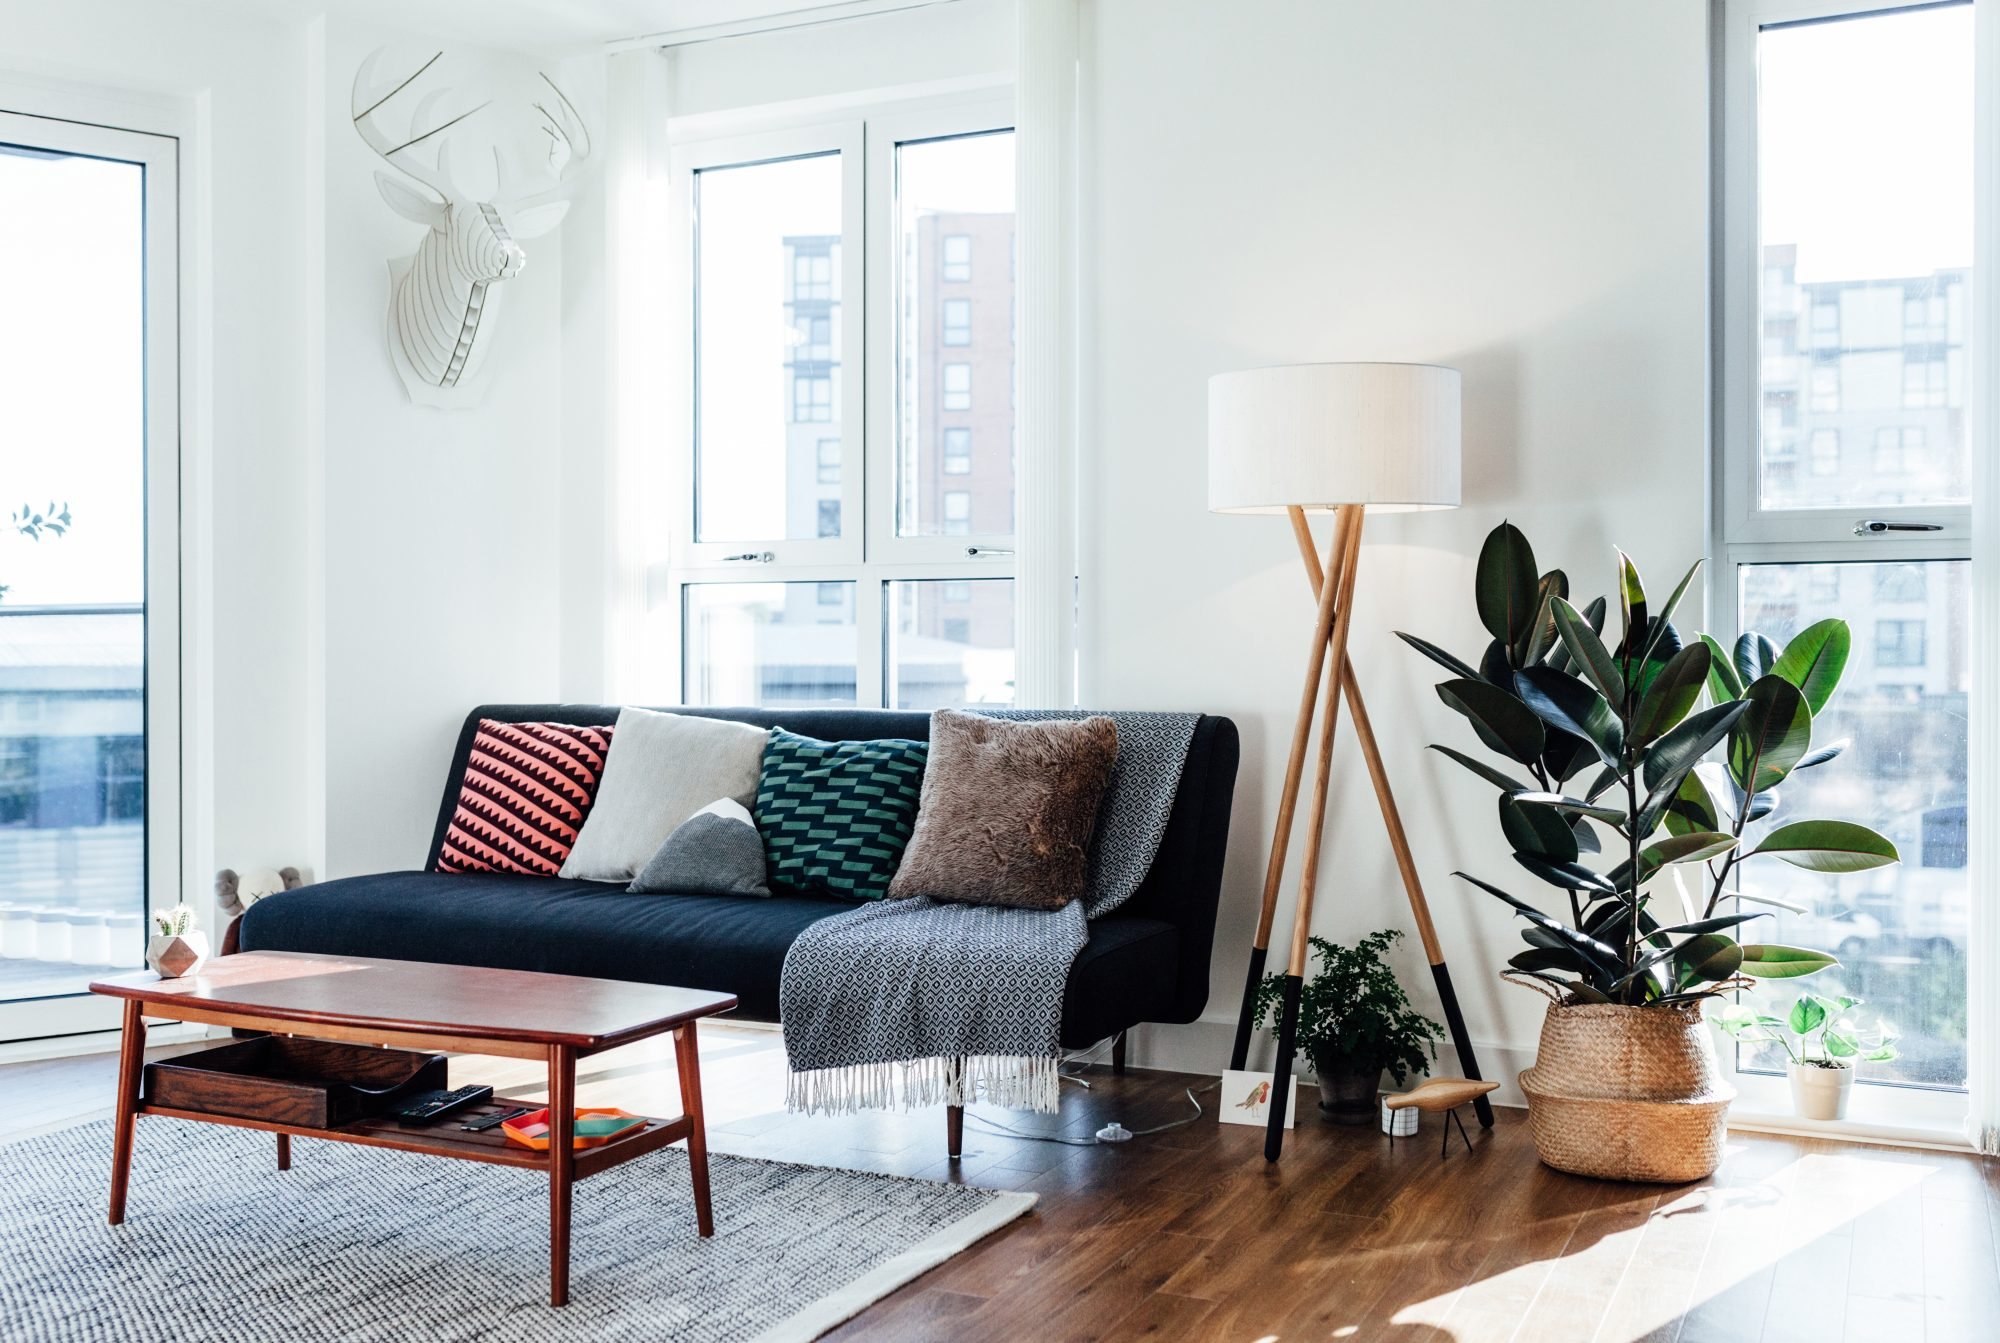 calling all hygge lovers wabi sabi is the new home trend you can achieve in 2018 real simple. Black Bedroom Furniture Sets. Home Design Ideas